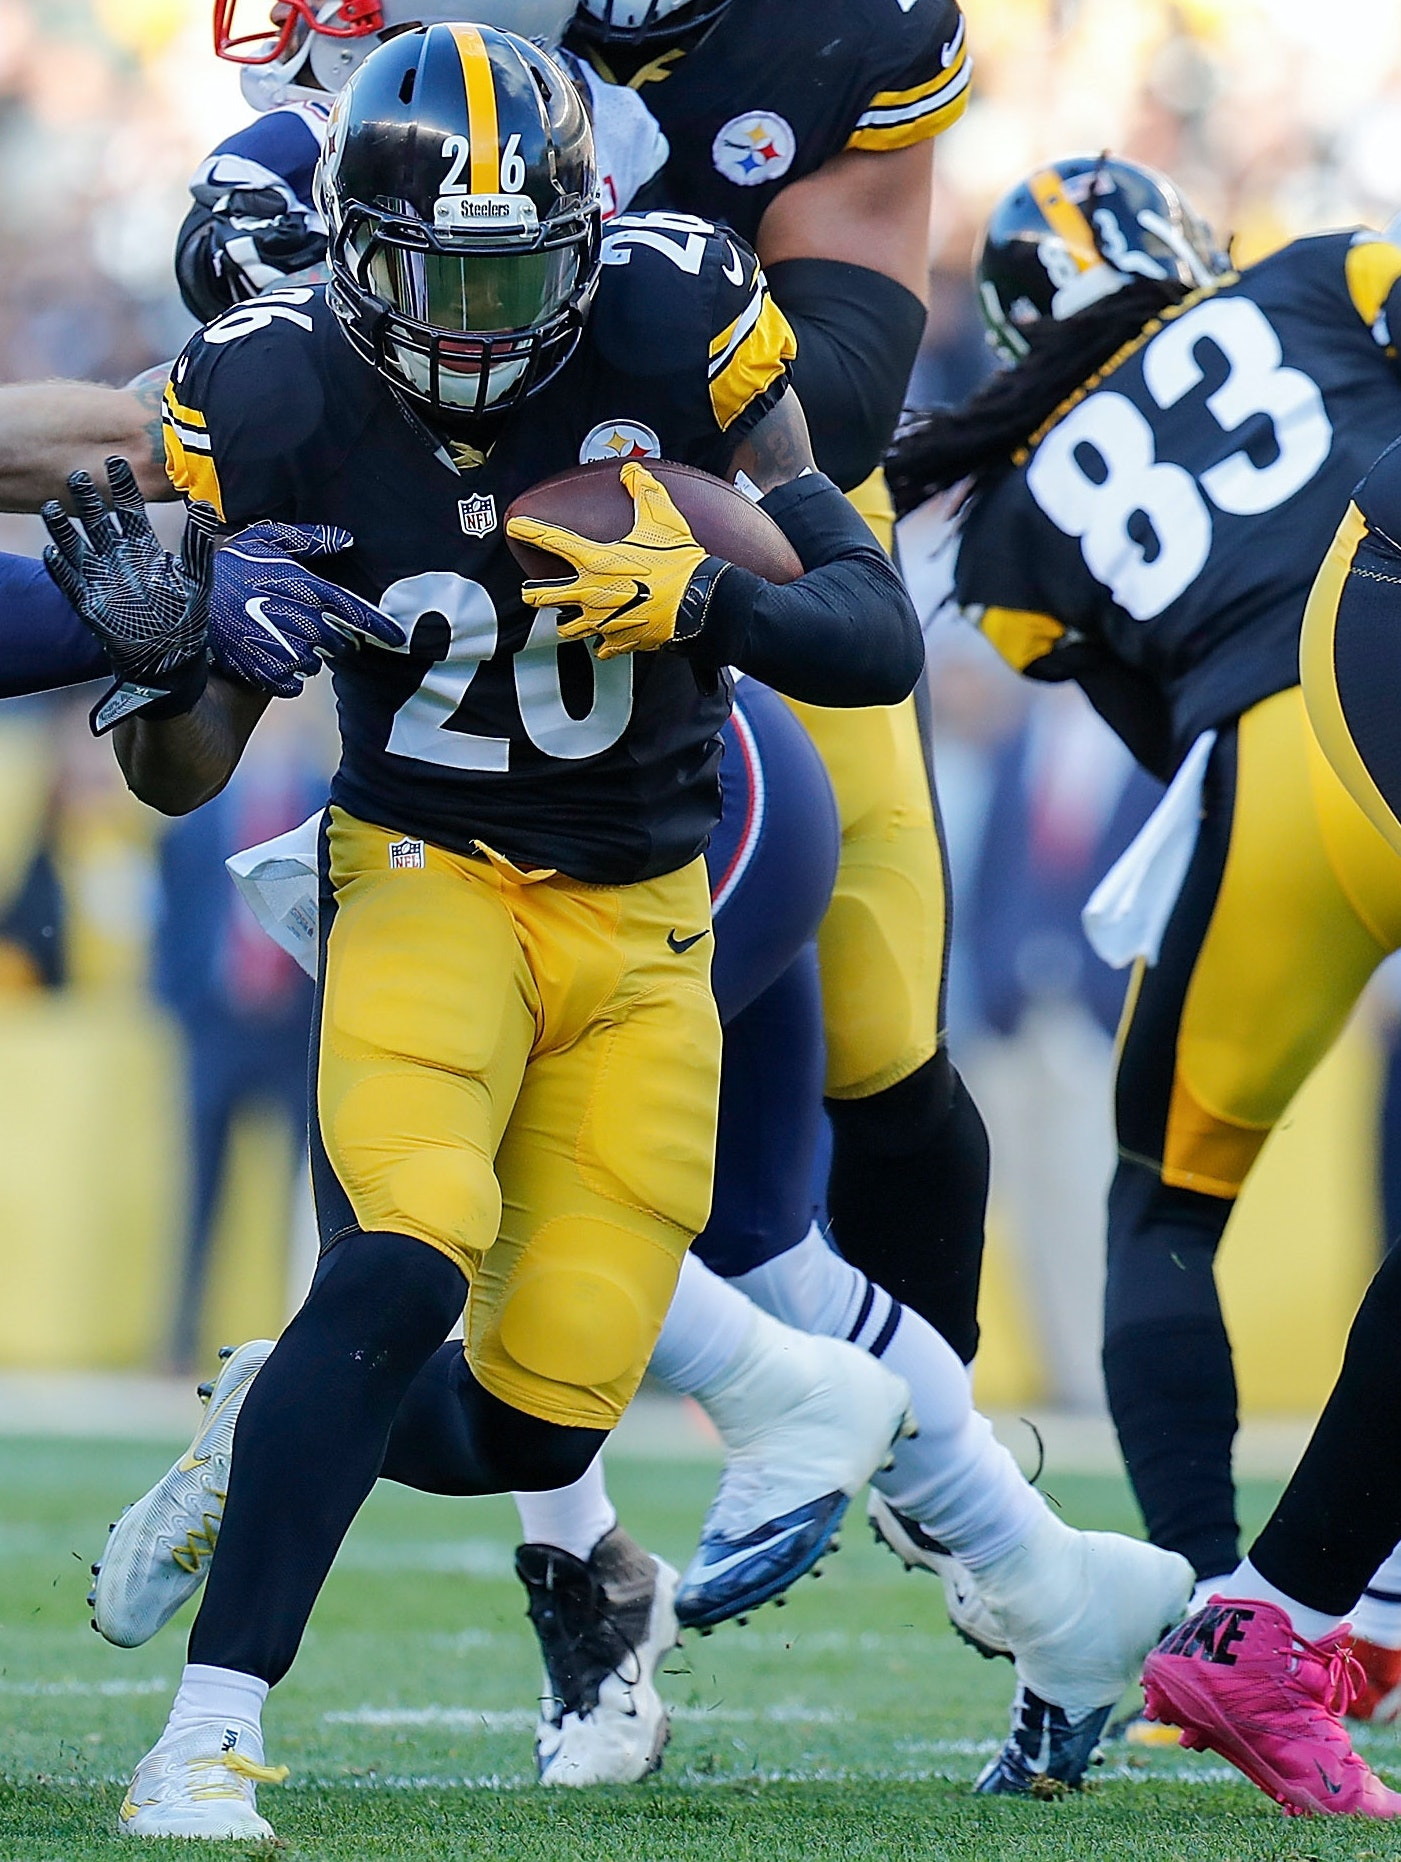 Le'Veon Bell of the Pittsburgh Steelers rushes against the Patriots, creating new statistics.